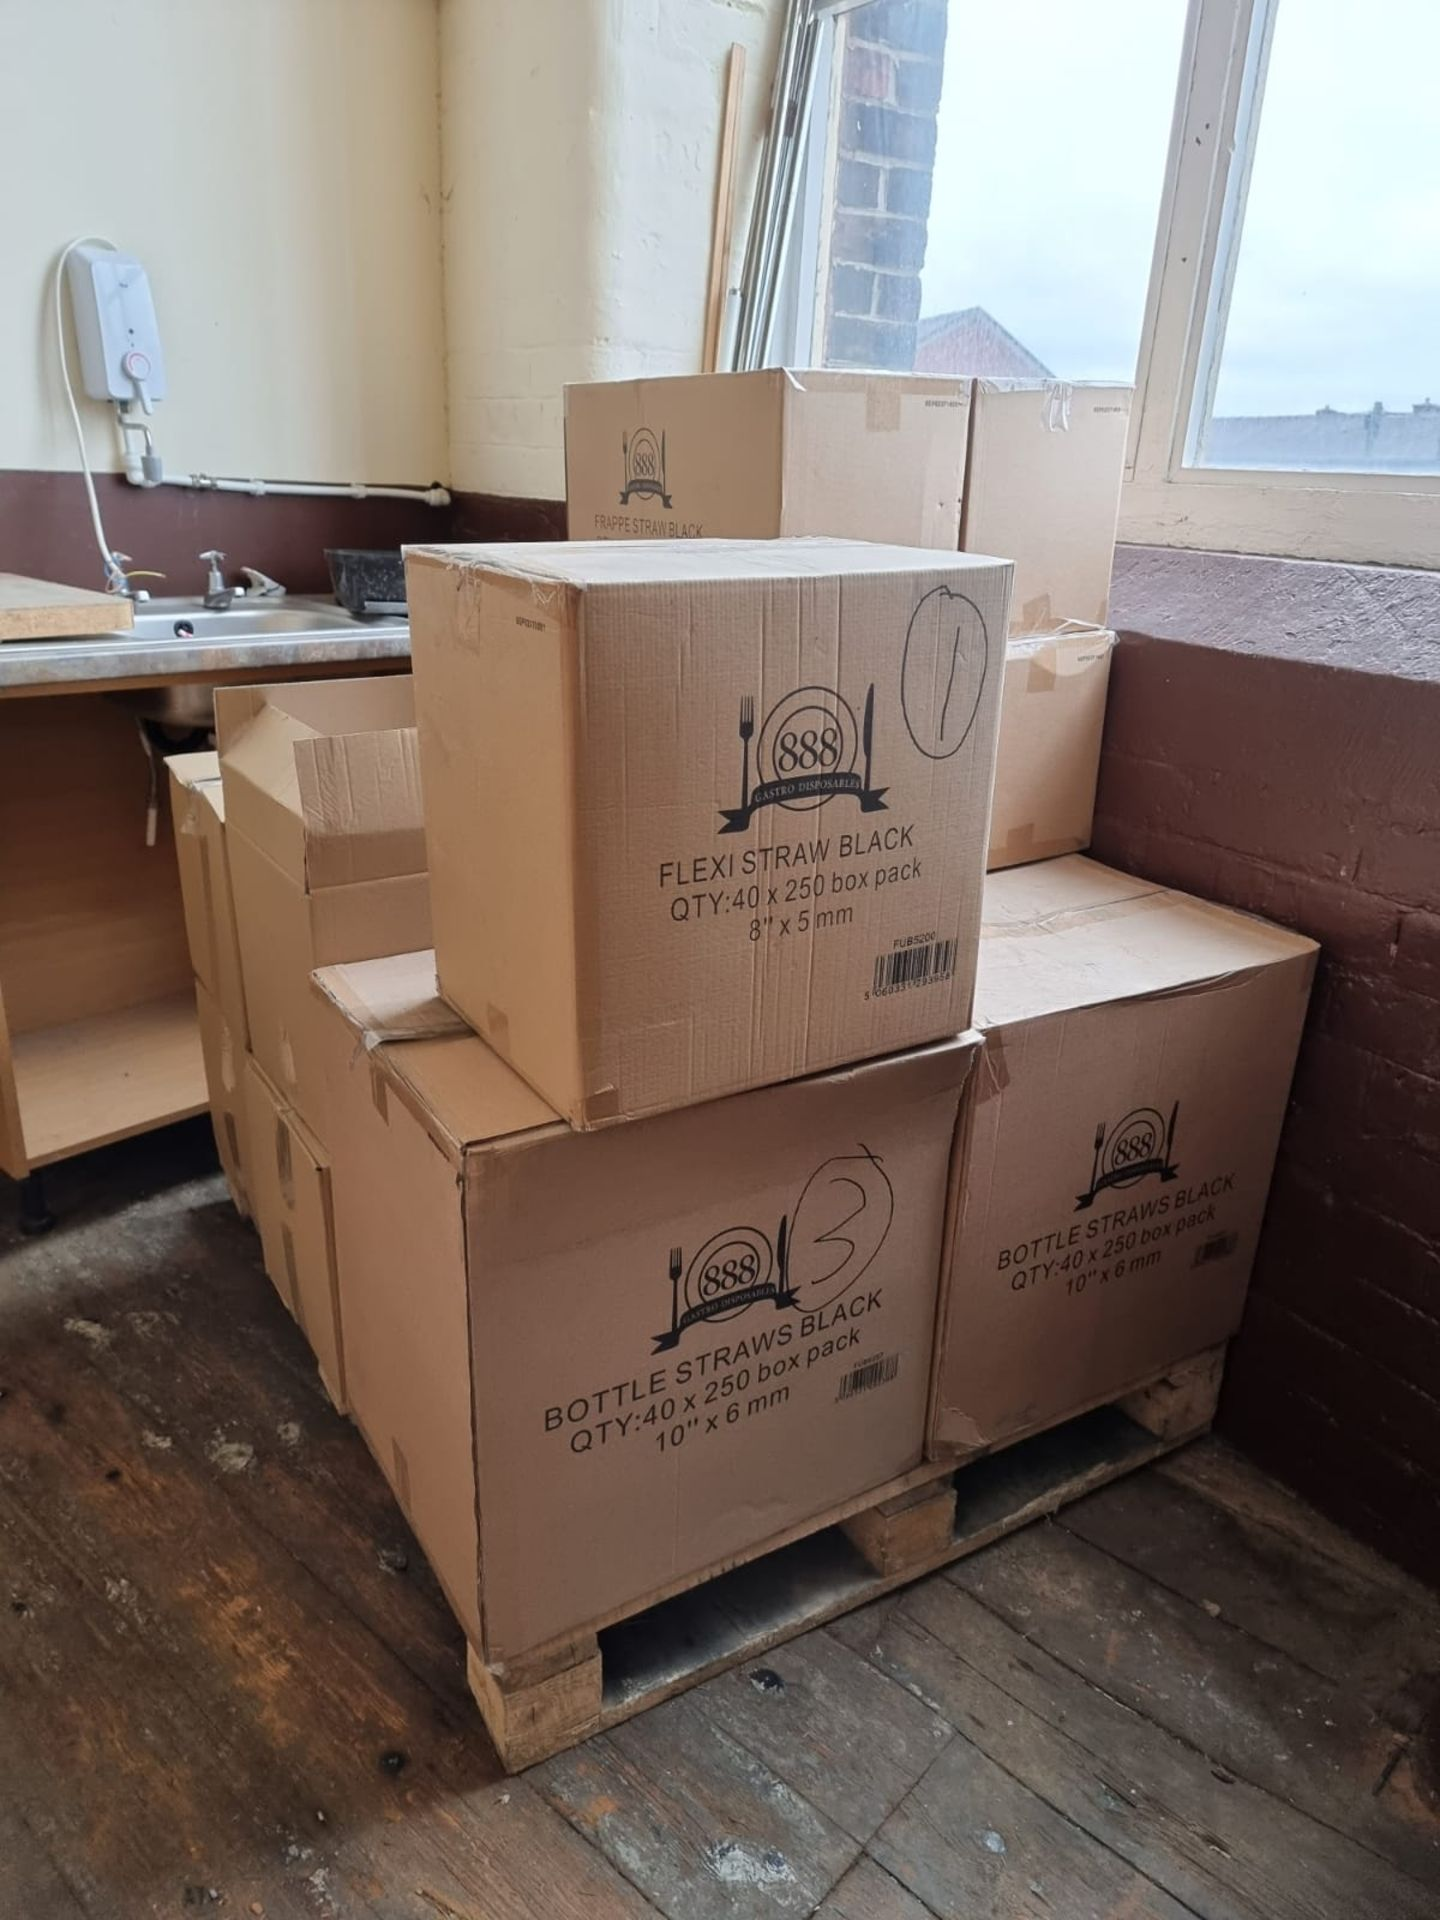 22 x Pallets of Disposable Catering Items | See description for more details - Image 17 of 18